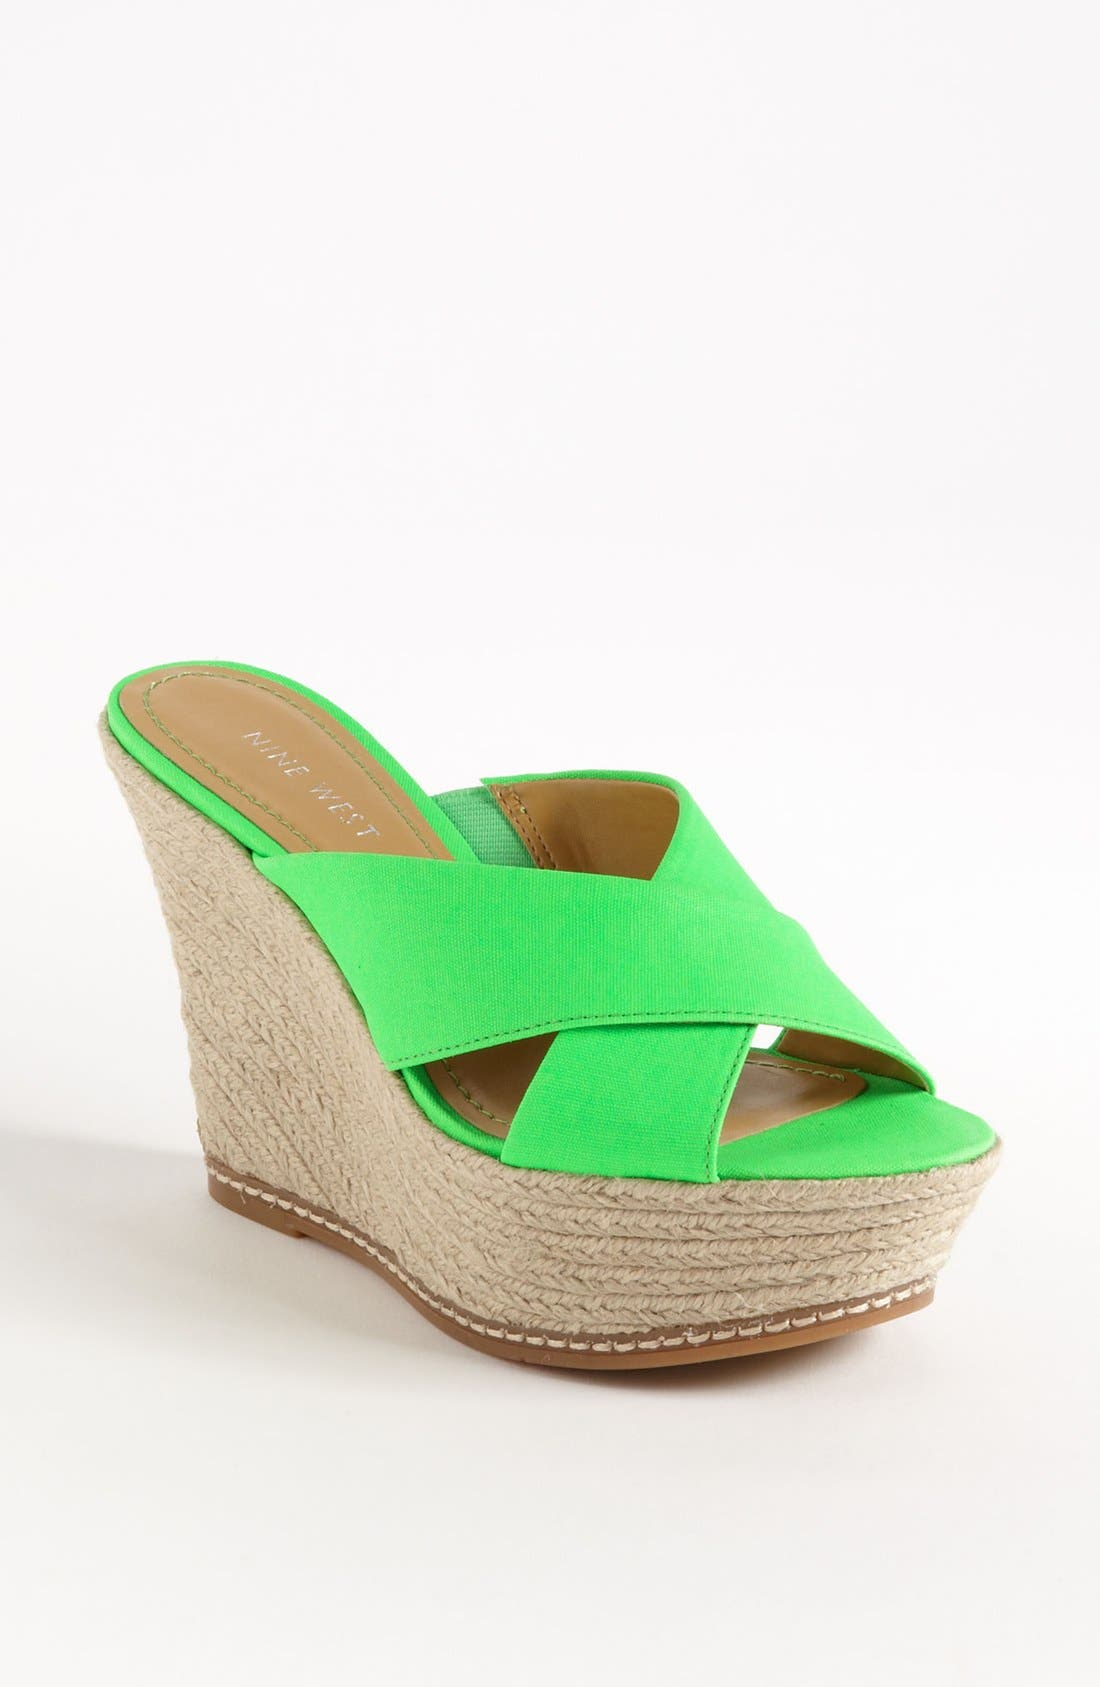 Alternate Image 1 Selected - Nine West 'Dashall' Sandal